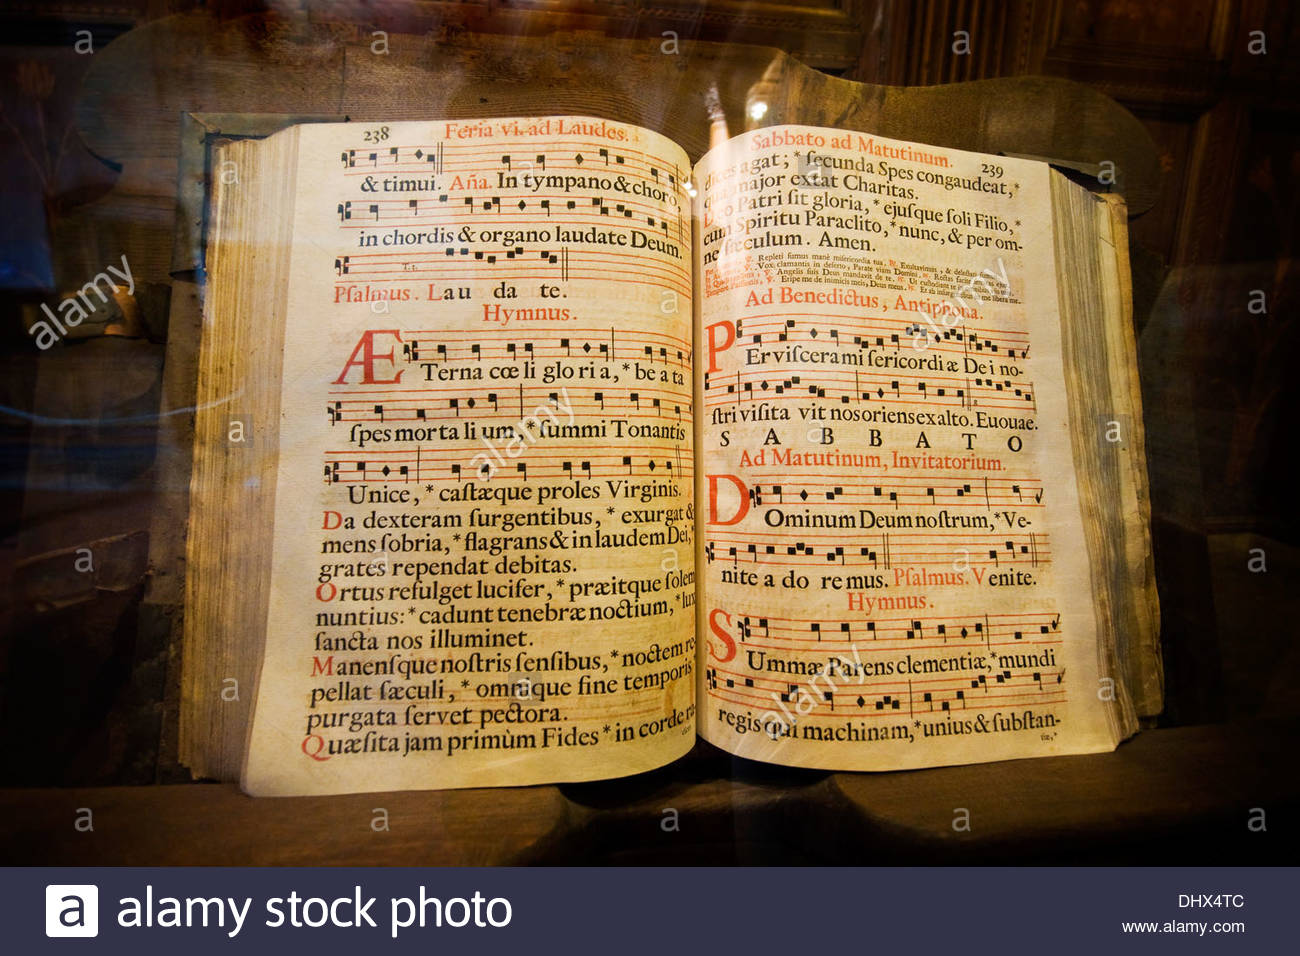 book kept in the sacristy of the Basilica of Santa Croce,Florence - Stock Image